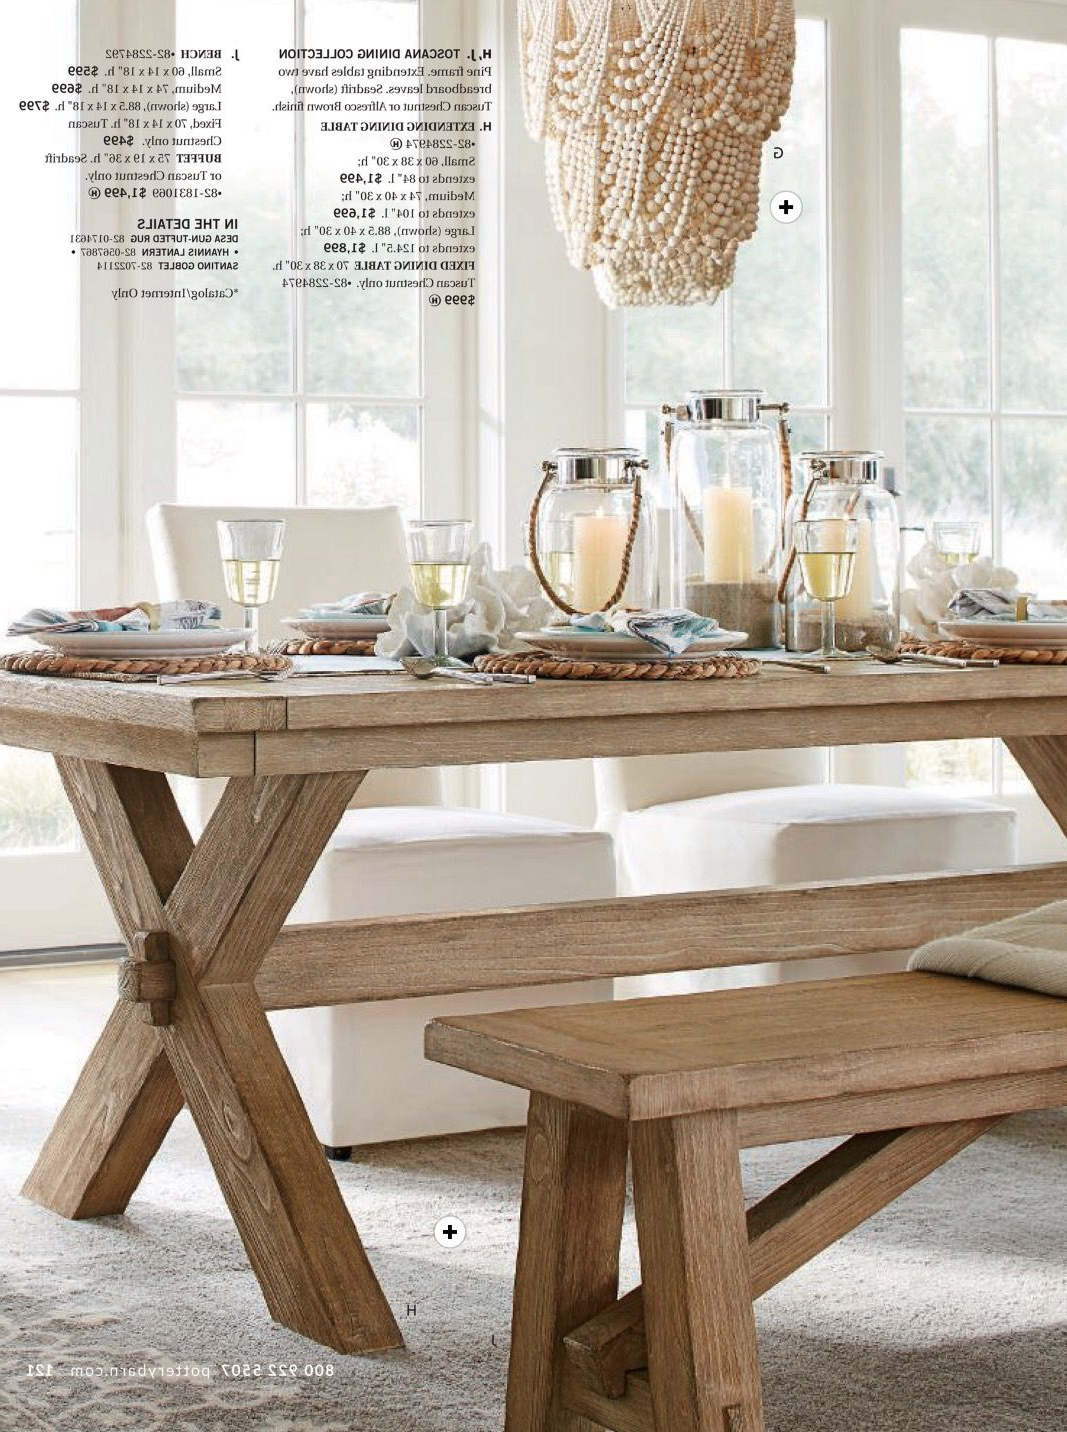 Toscano Dining Table And Bench In Seadrift, Amelia Wood Bead Regarding Trendy Seadrift Toscana Pedestal Extending Dining Tables (View 4 of 25)